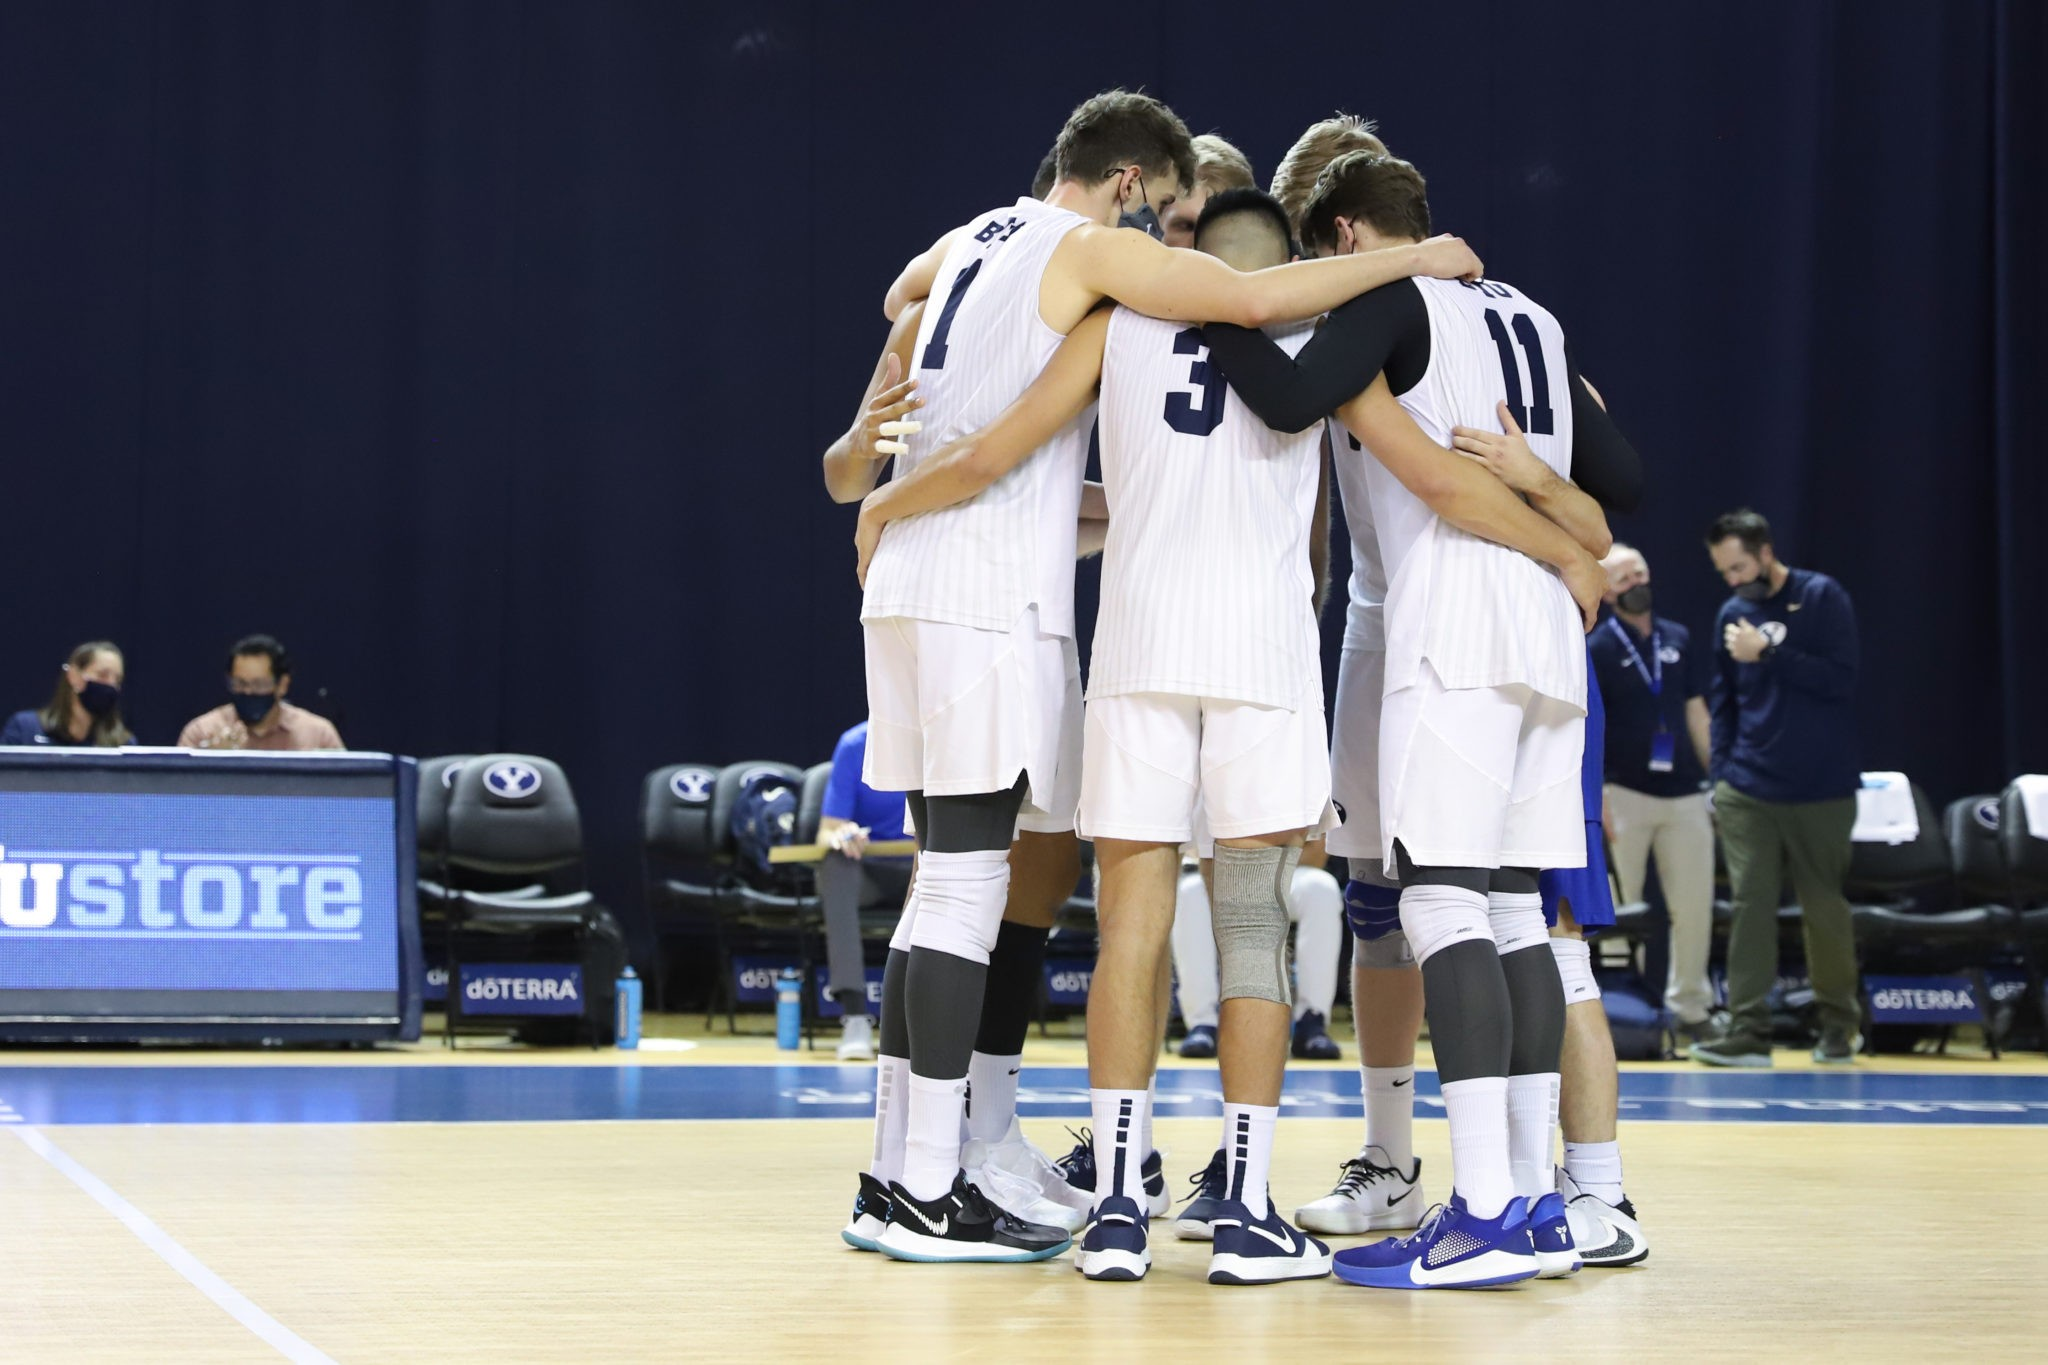 How Shawn Olmstead brought BYU men's volleyball back as national championship contenders